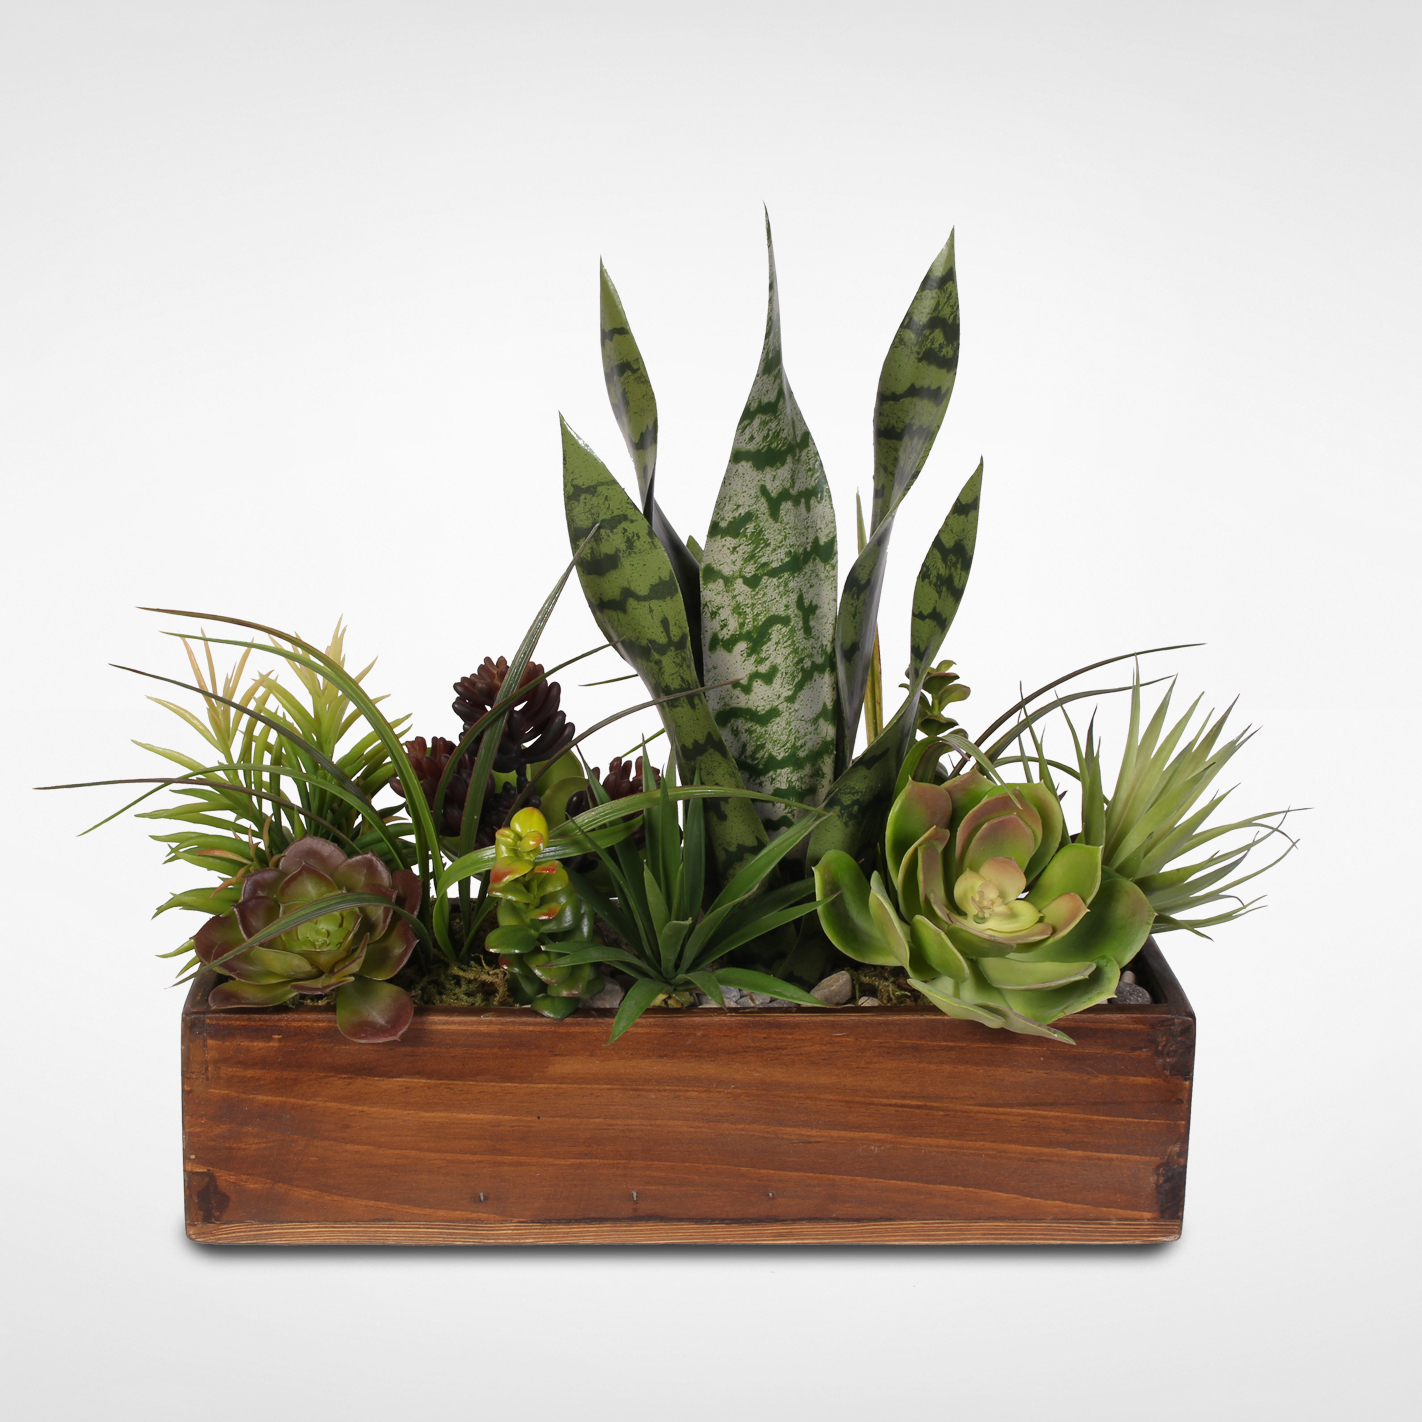 Artificial Botanical Succulent Variety in a Rustic Wooden Planter